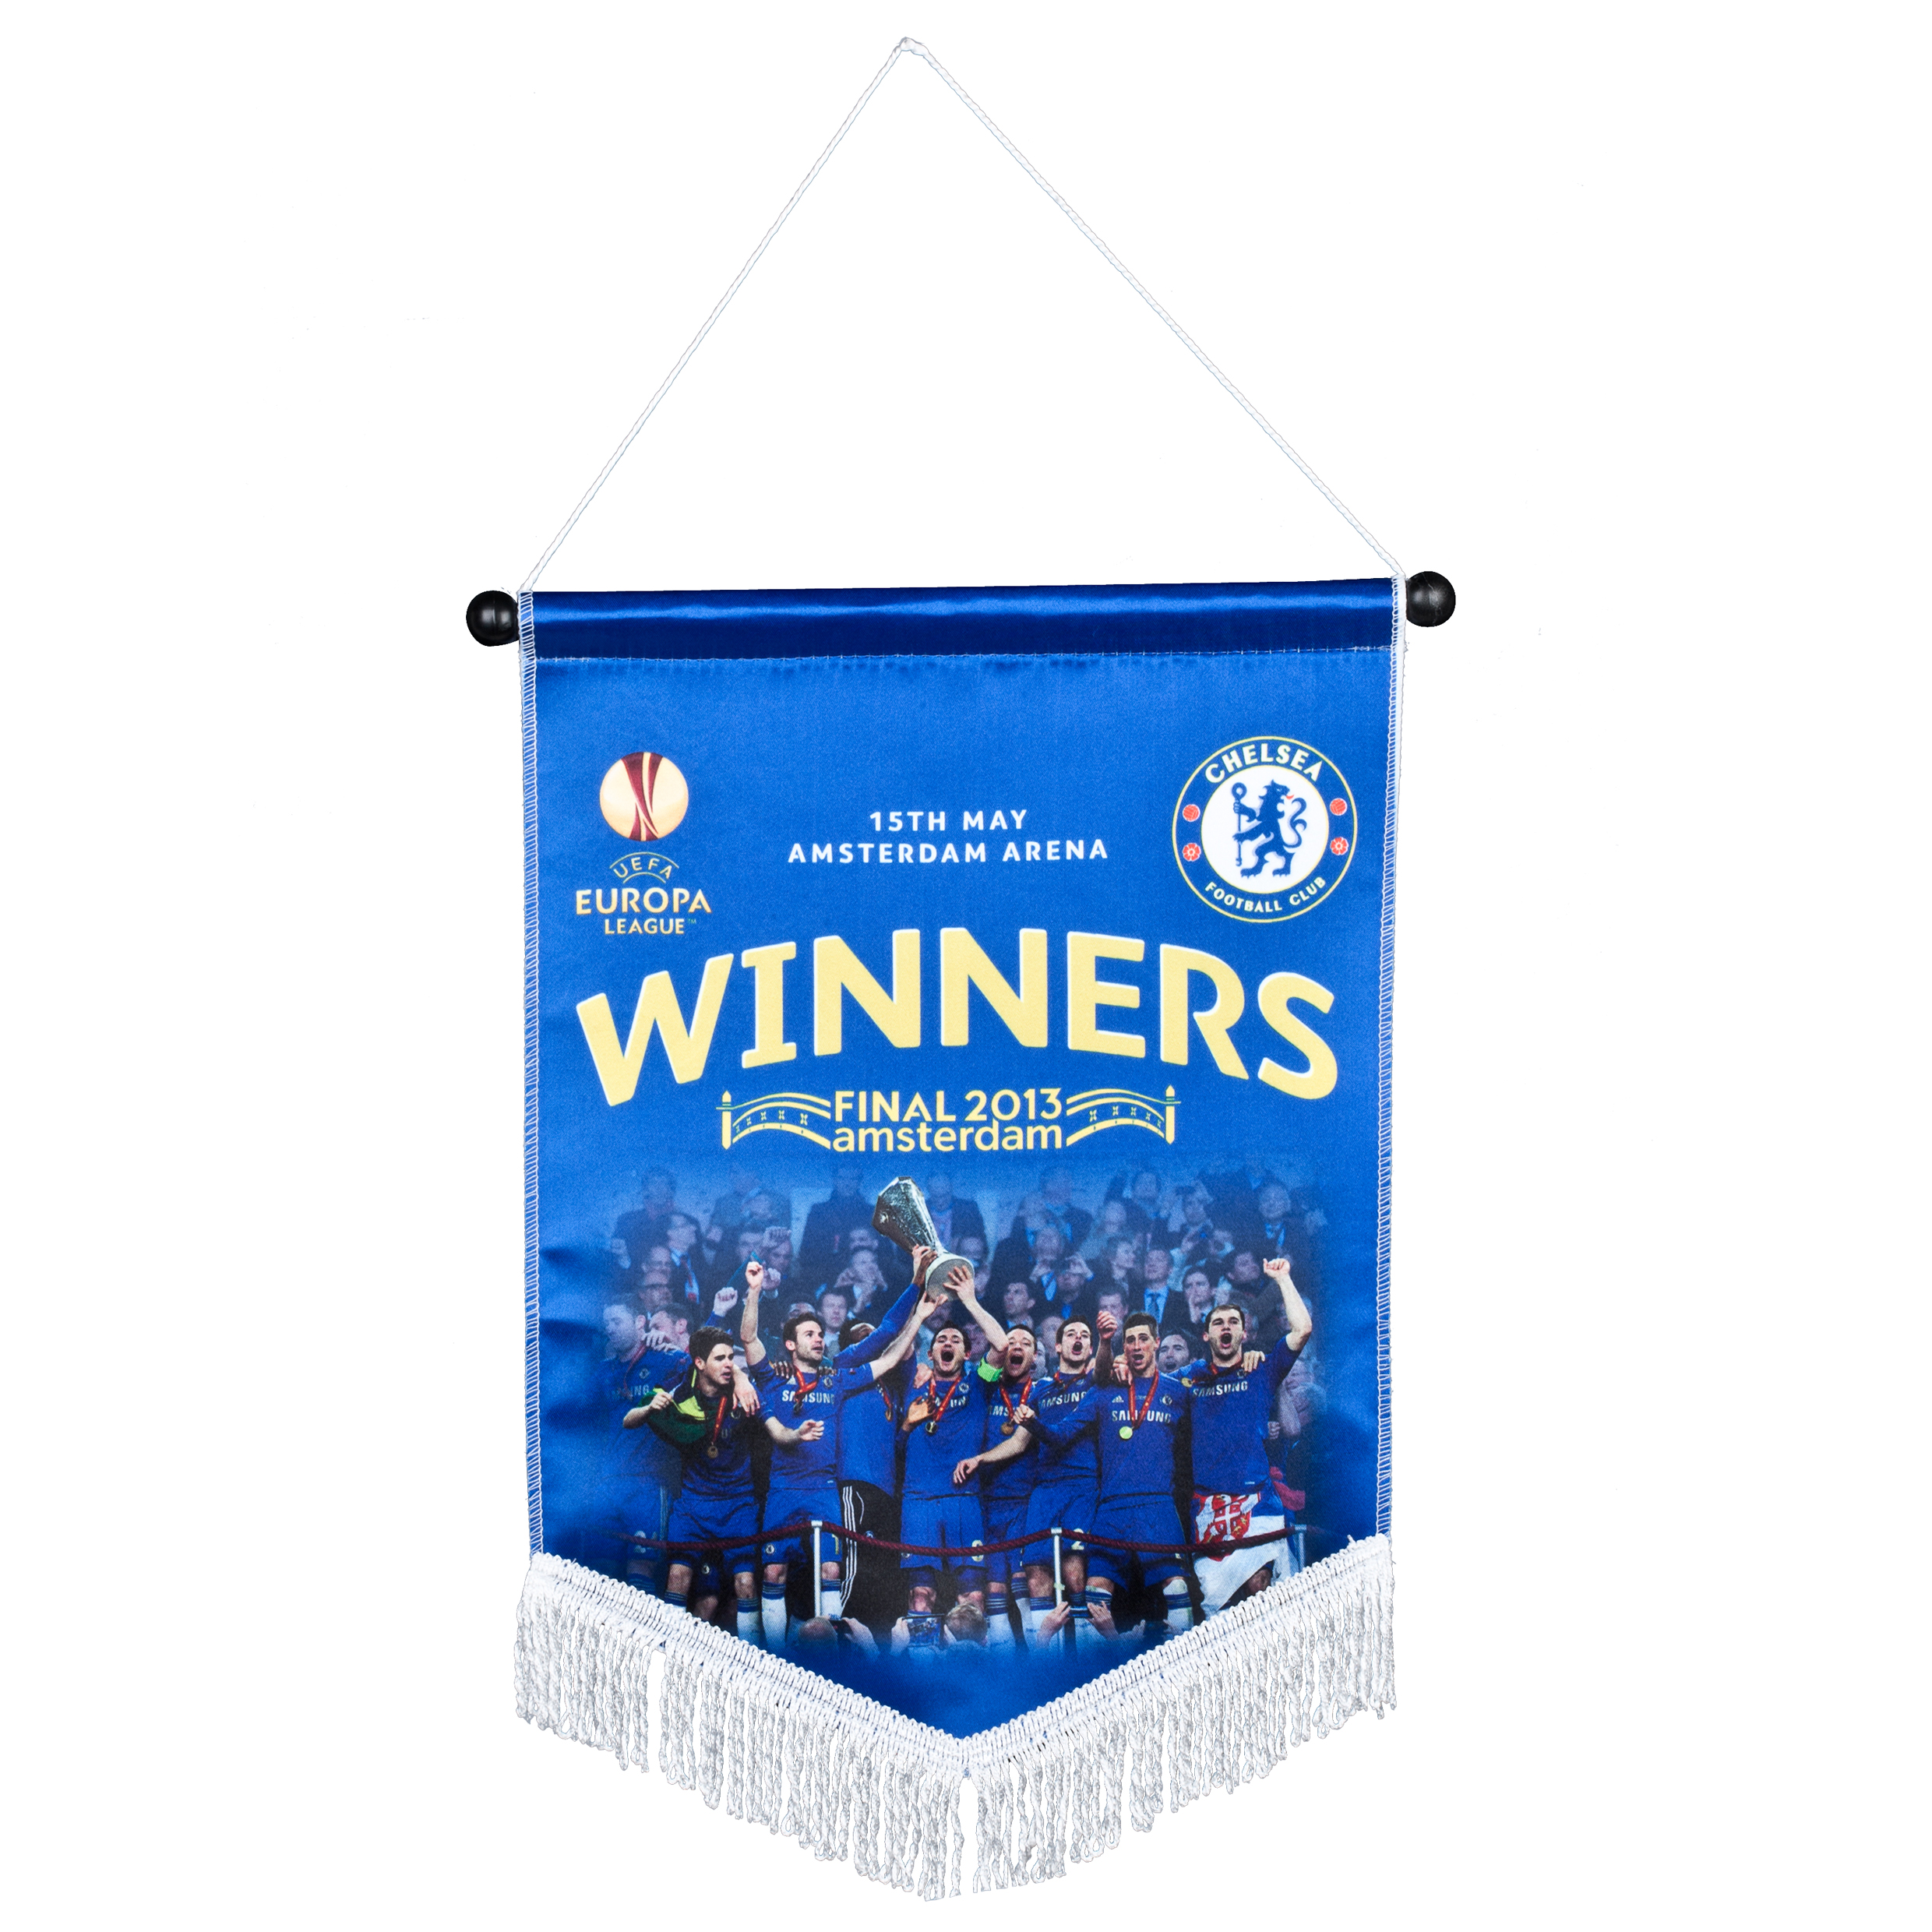 Chelsea EUROPA League 2013 Photo Celebration Winners Pennant